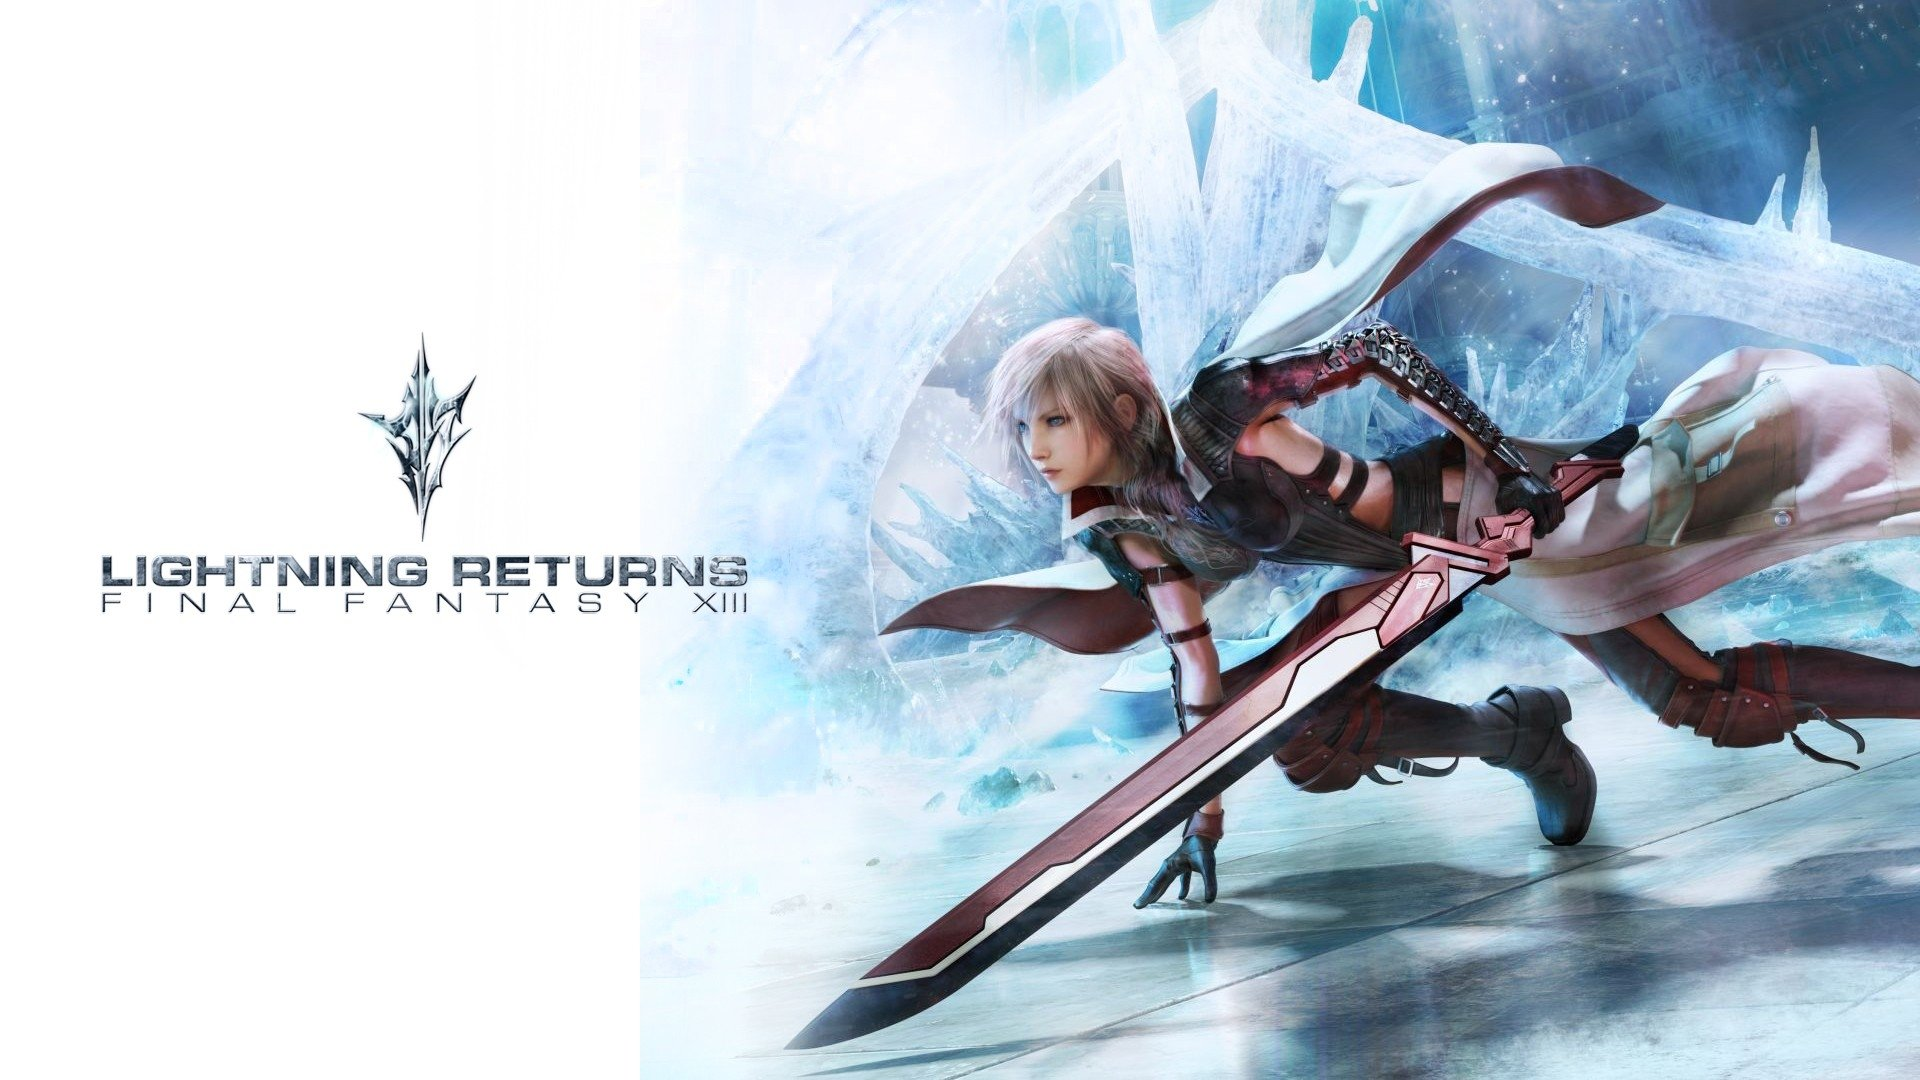 lightning returns final fantasy xiii full hd wallpaper